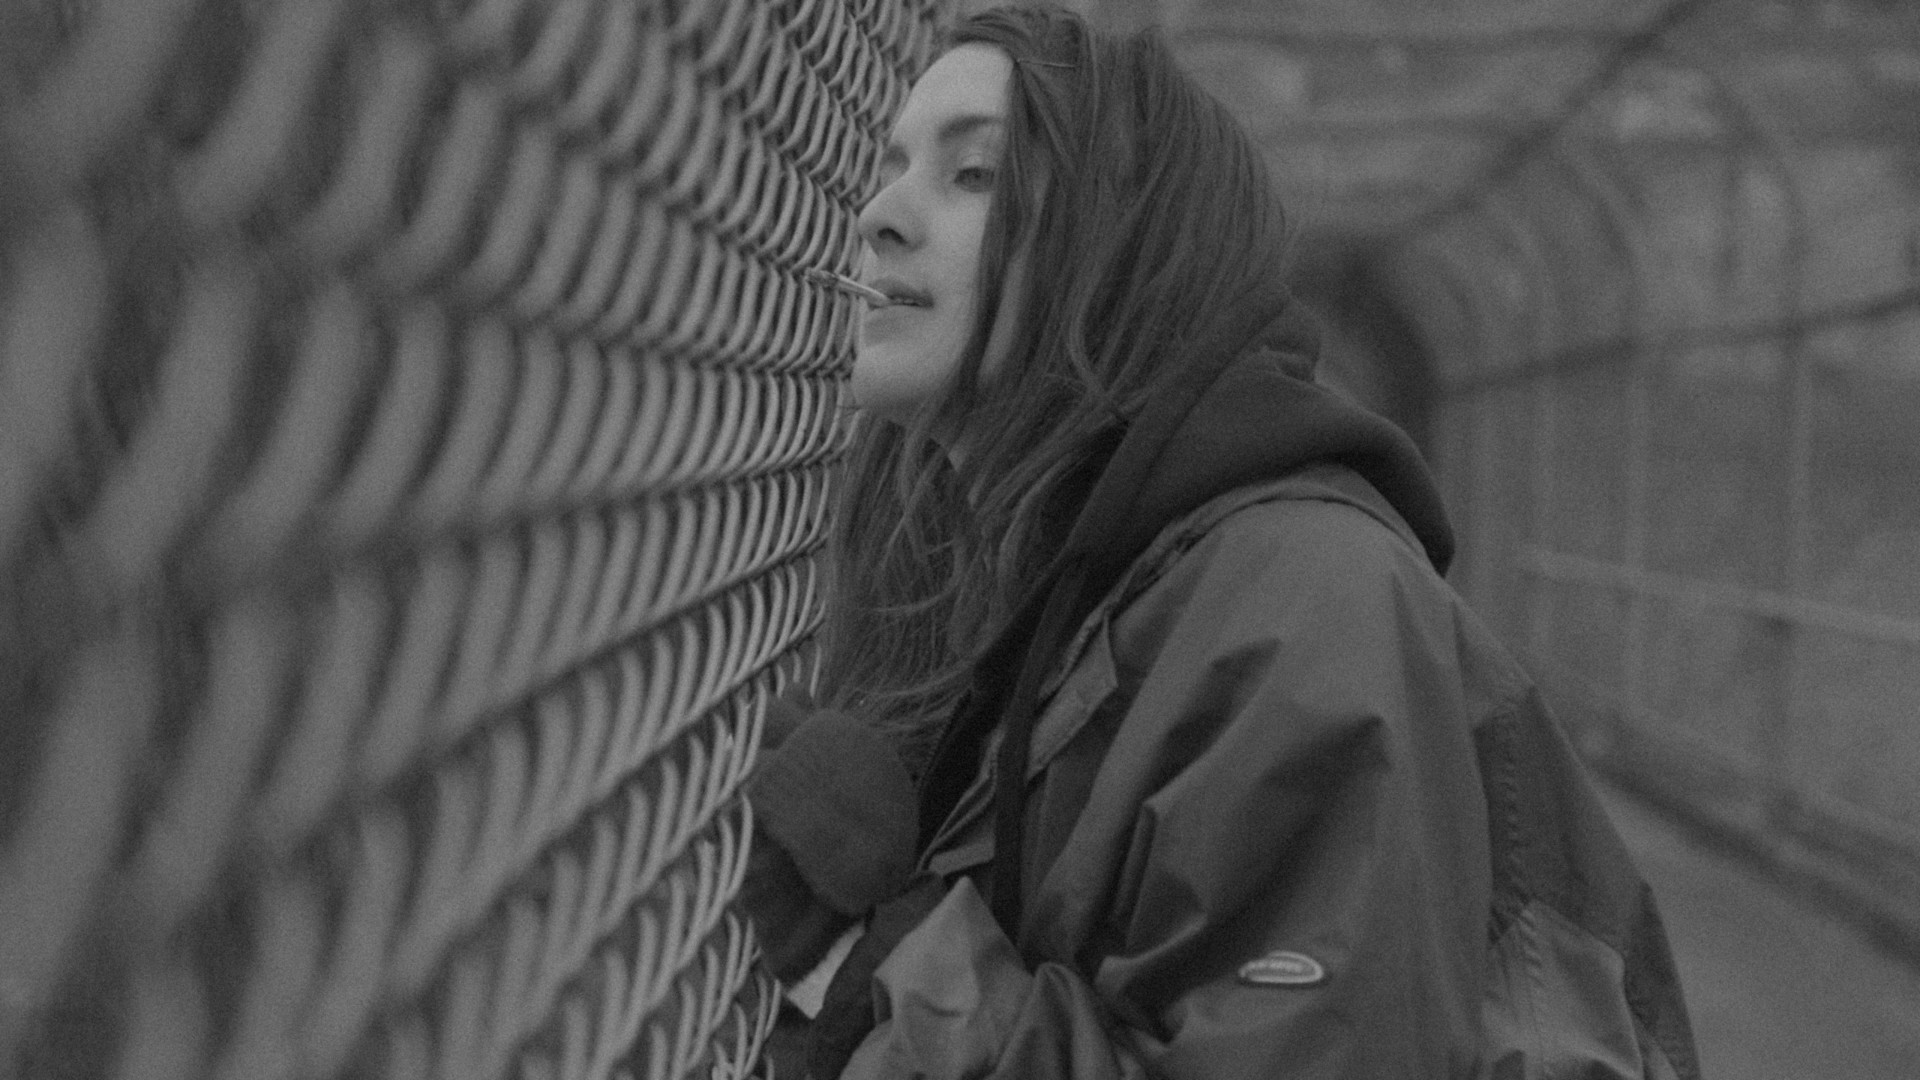 AFTER THE ABYSS   by Daniel Yocum  | 05:50 | A homeless heroin addicted prostitute in Nashville, Tennessee seeks transcendence from her suffering.